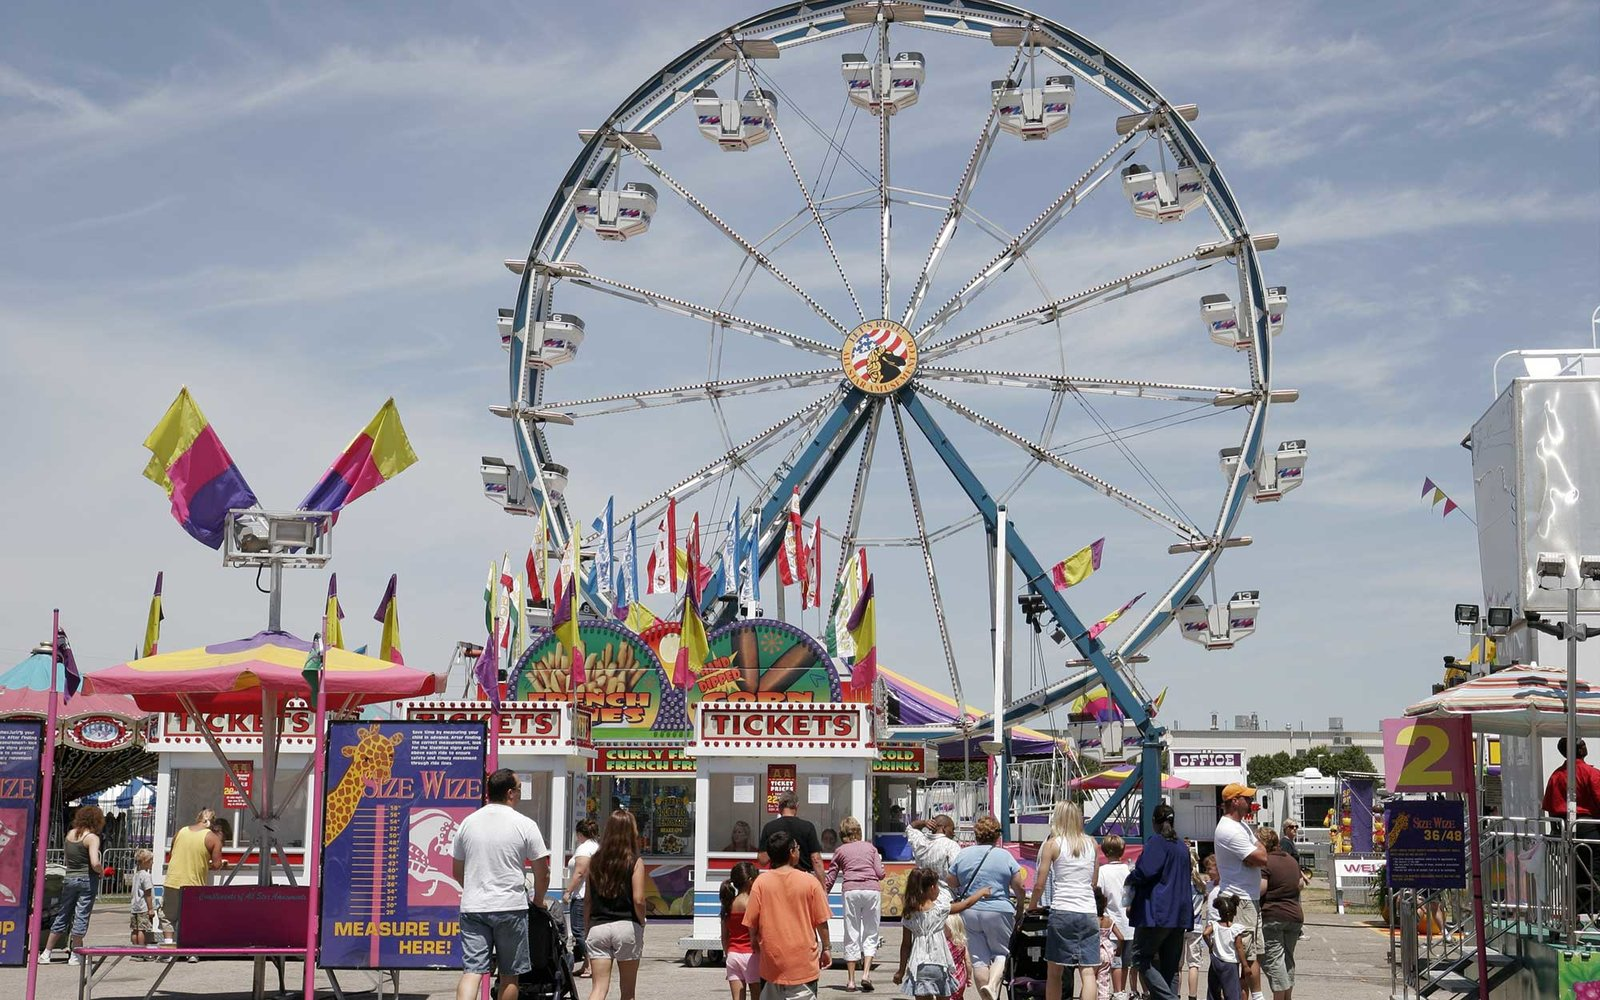 Indiana, Valparaiso, Porter County Fair, Ferris Wheel, Carnival Rides, Families. (Photo by: Jeff Greenberg/UIG via Getty Images)